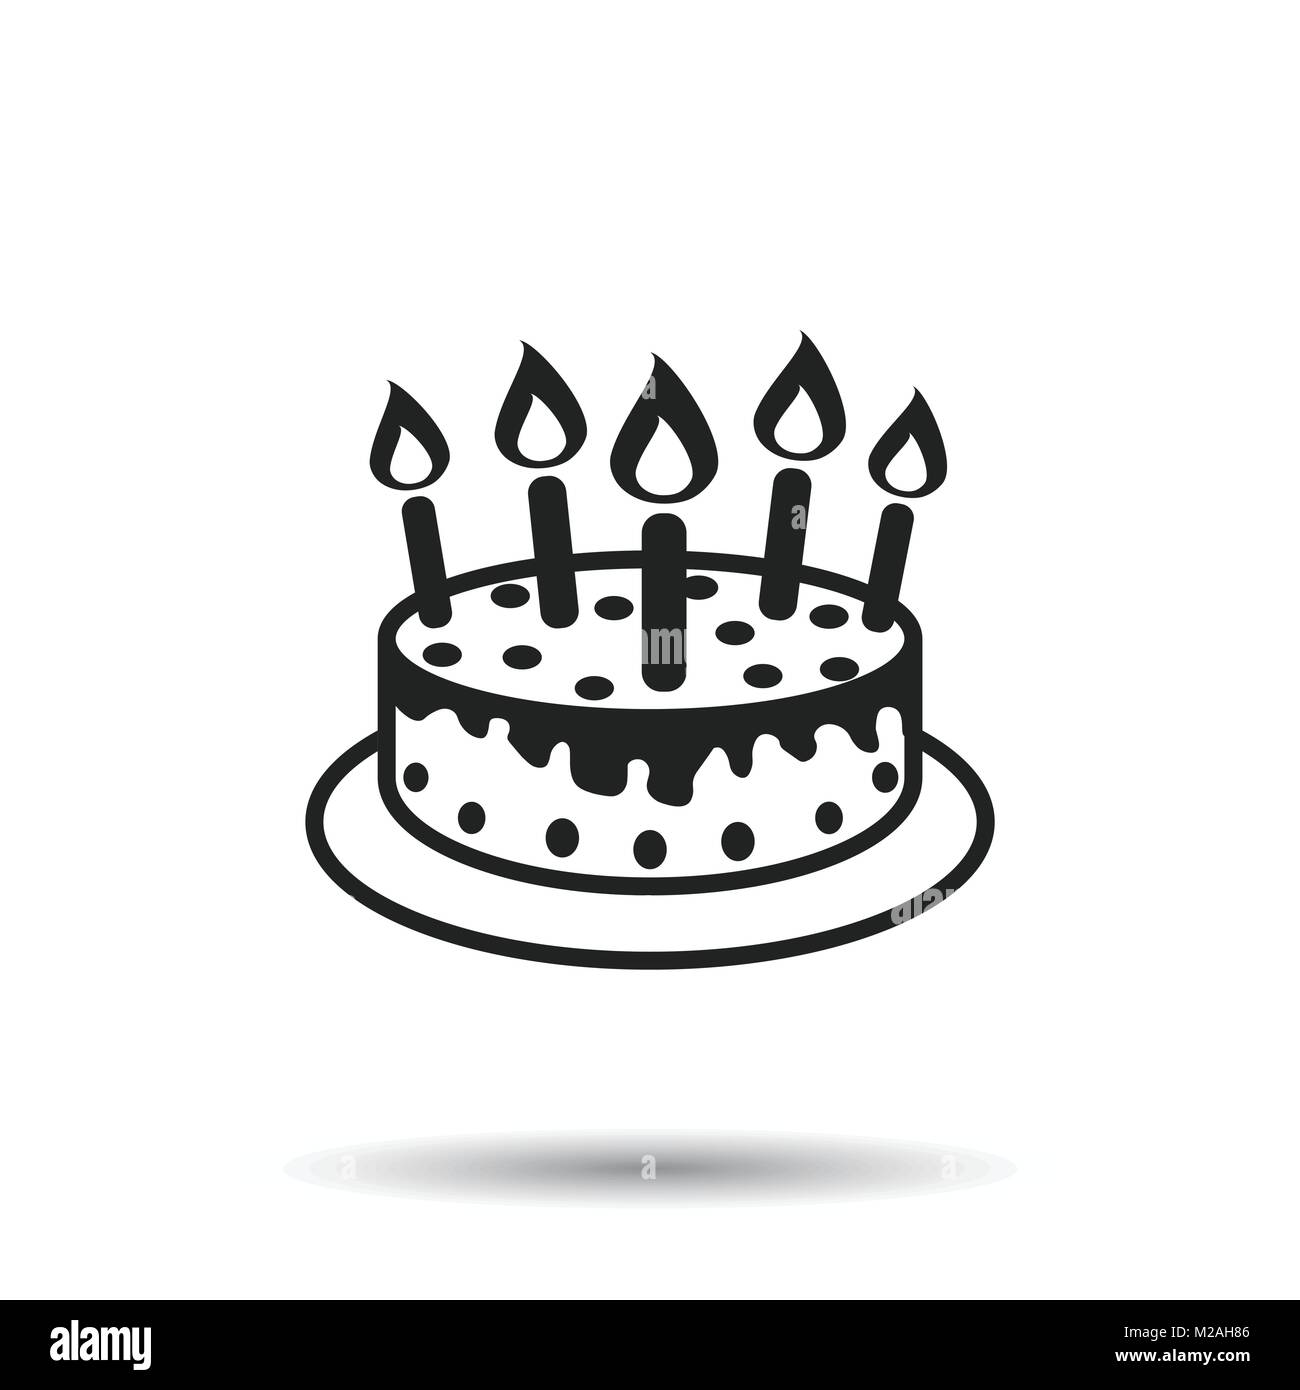 Cake With Candle Icon Simple Flat Pictogram For Business Marketing